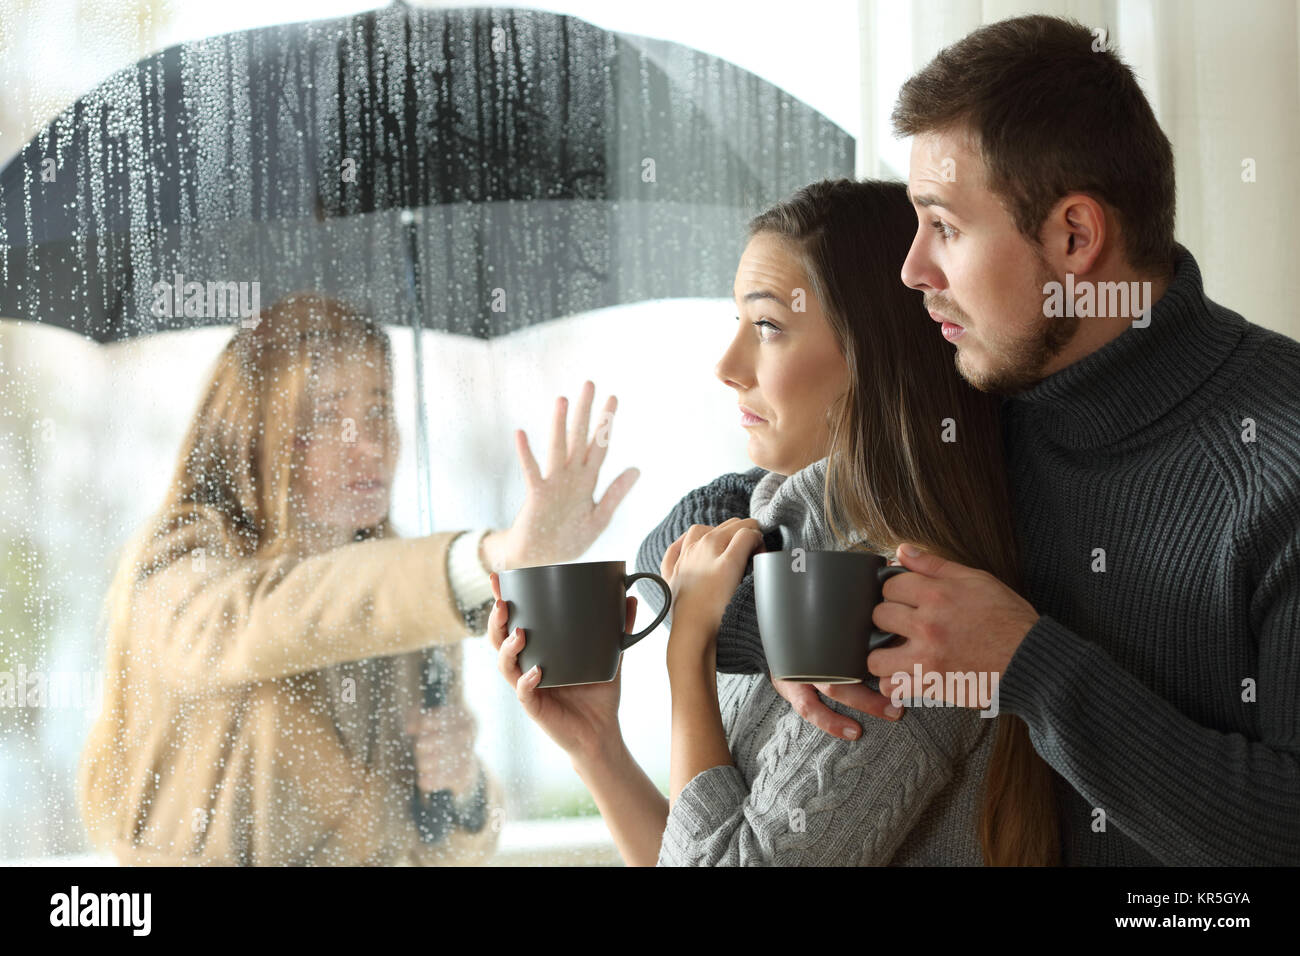 Stalker ex girlfriend disturbing to a couple that is relaxing looking through a window in a coffee shop - Stock Image